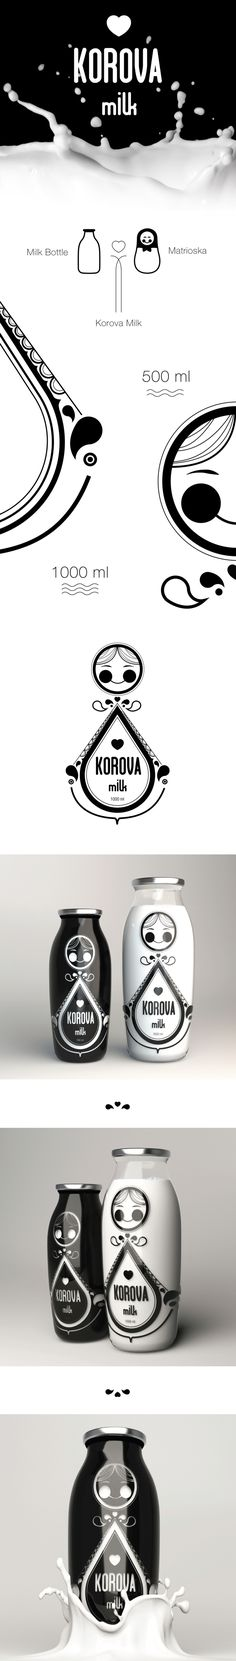 Korova Milk by Domenico Ruffo, via Behance . Pack . Packaging . Design . Bottle . Milk . Product Design .